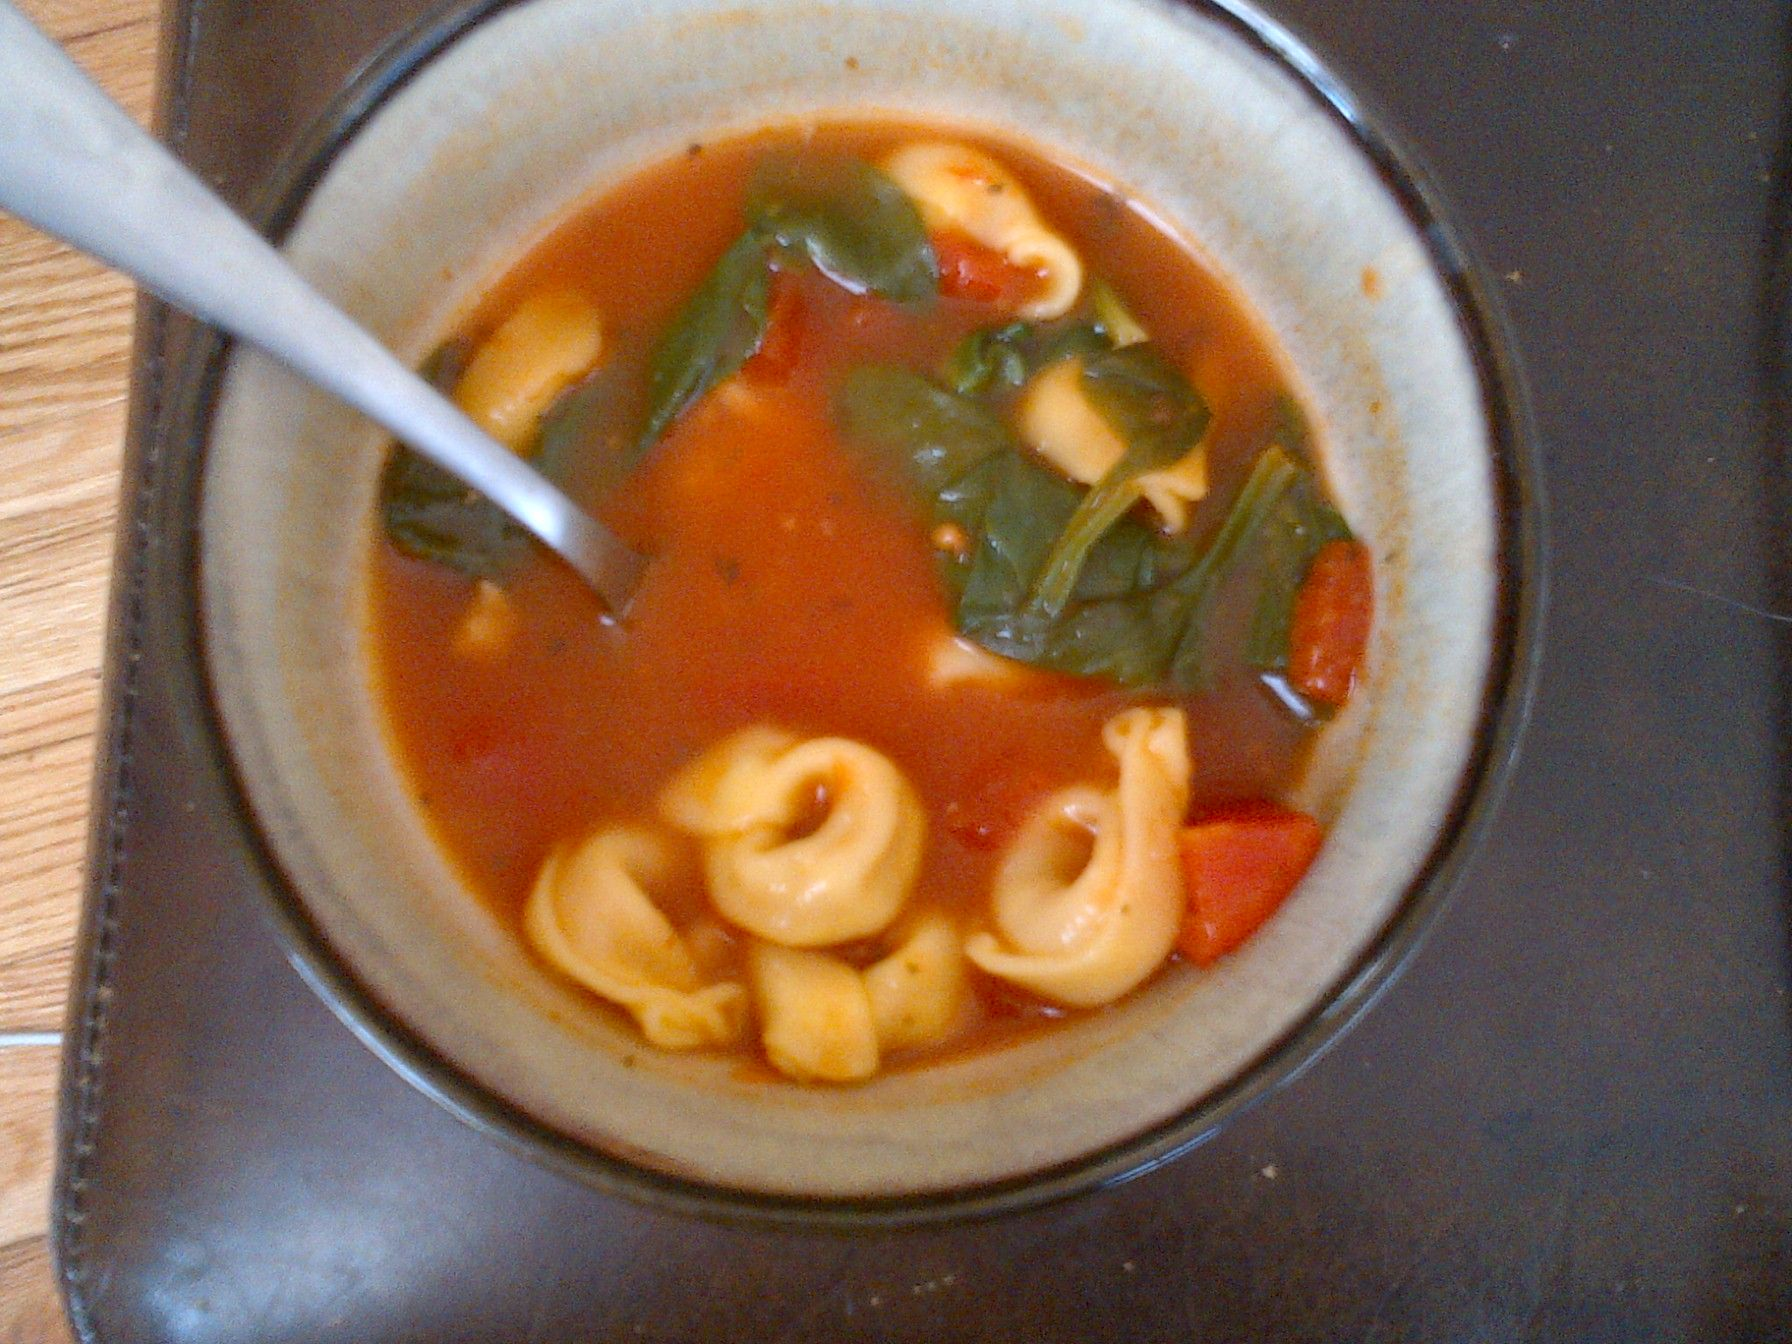 Tomato Spinach Tortellini Soup  32oz of Chicken Broth  1 Can oz diced tomatoes  A handful of dried tortellini  A few handfuls of baby spinach at the end.   SO DELICIOUS